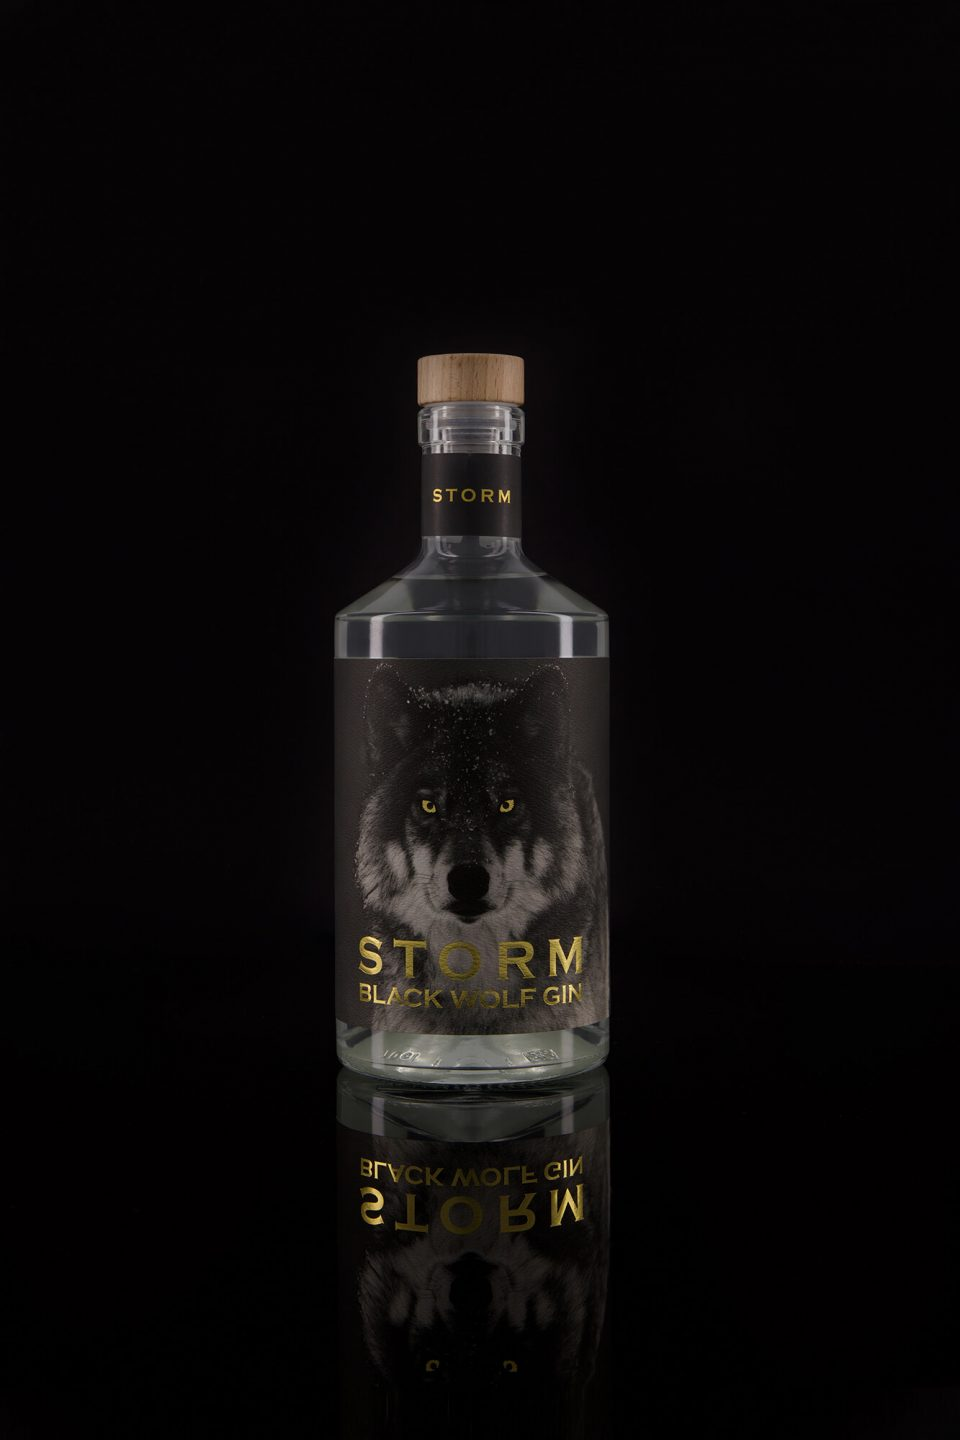 STORM Gin photographed on black background with gold reflections